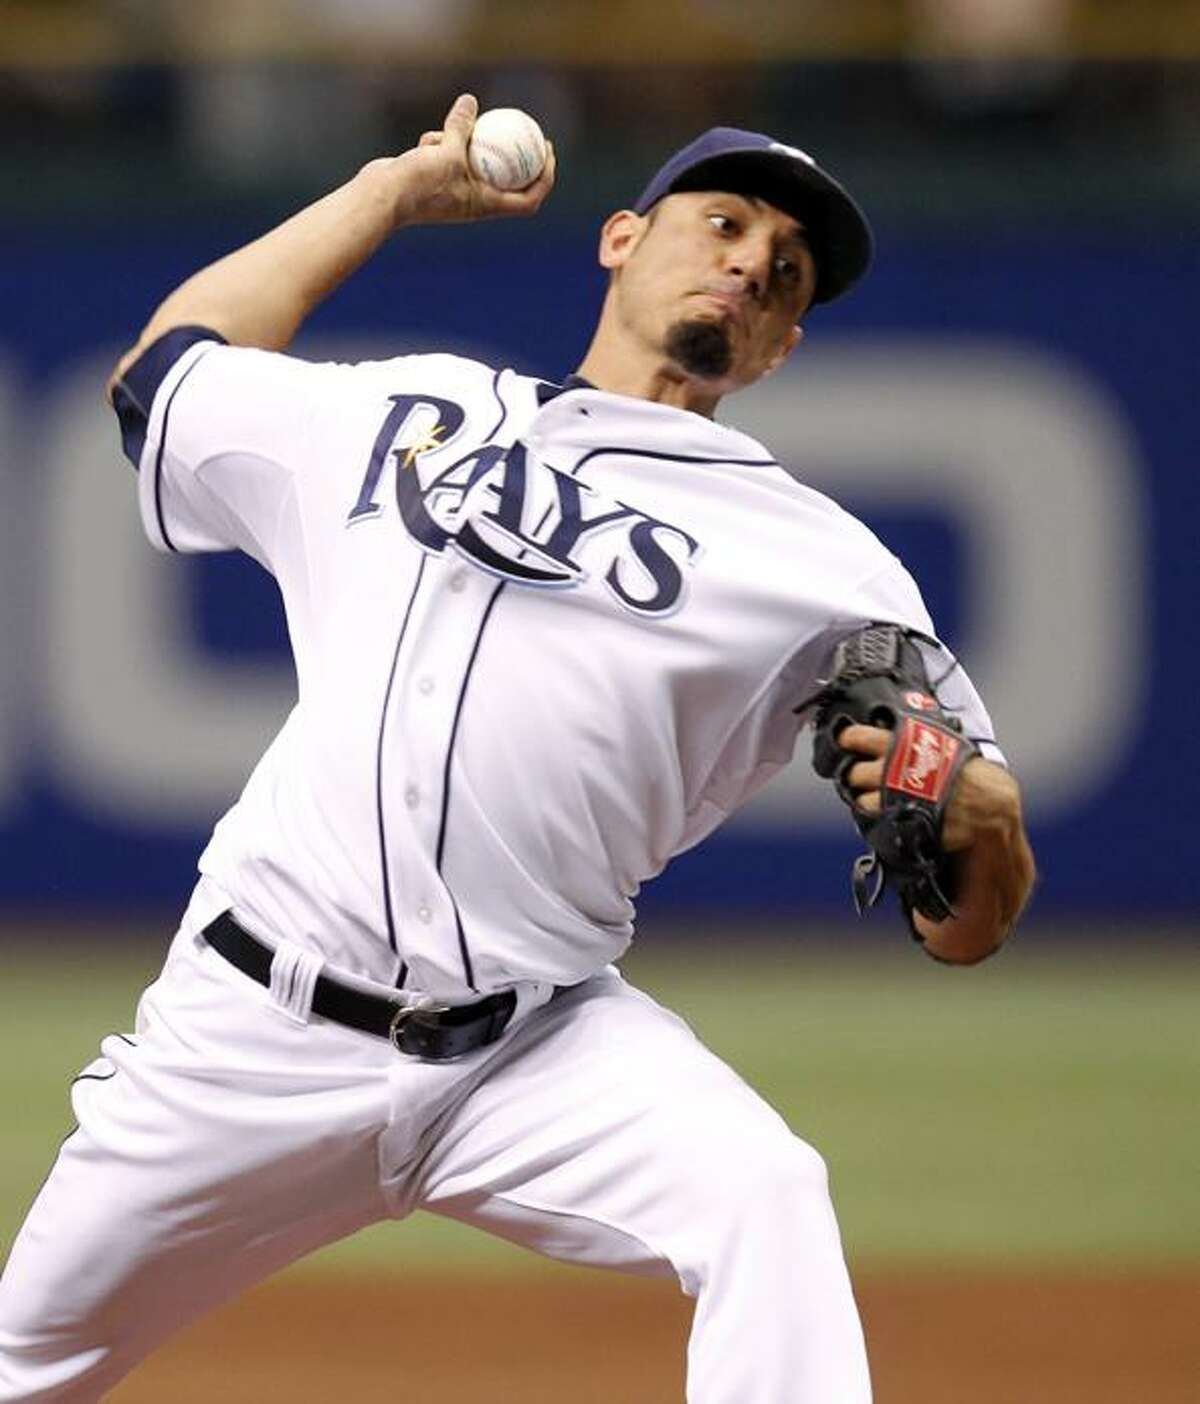 Tampa Bay Rays starting pitcher Matt Garza throws in the first inning of a baseball game against the Detroit Tigers, Monday in St. Petersburg, Fla. Garza ended up throwing the first no-hitter in Tampa Bay Rays history. (AP Photo/Mike Carlson)